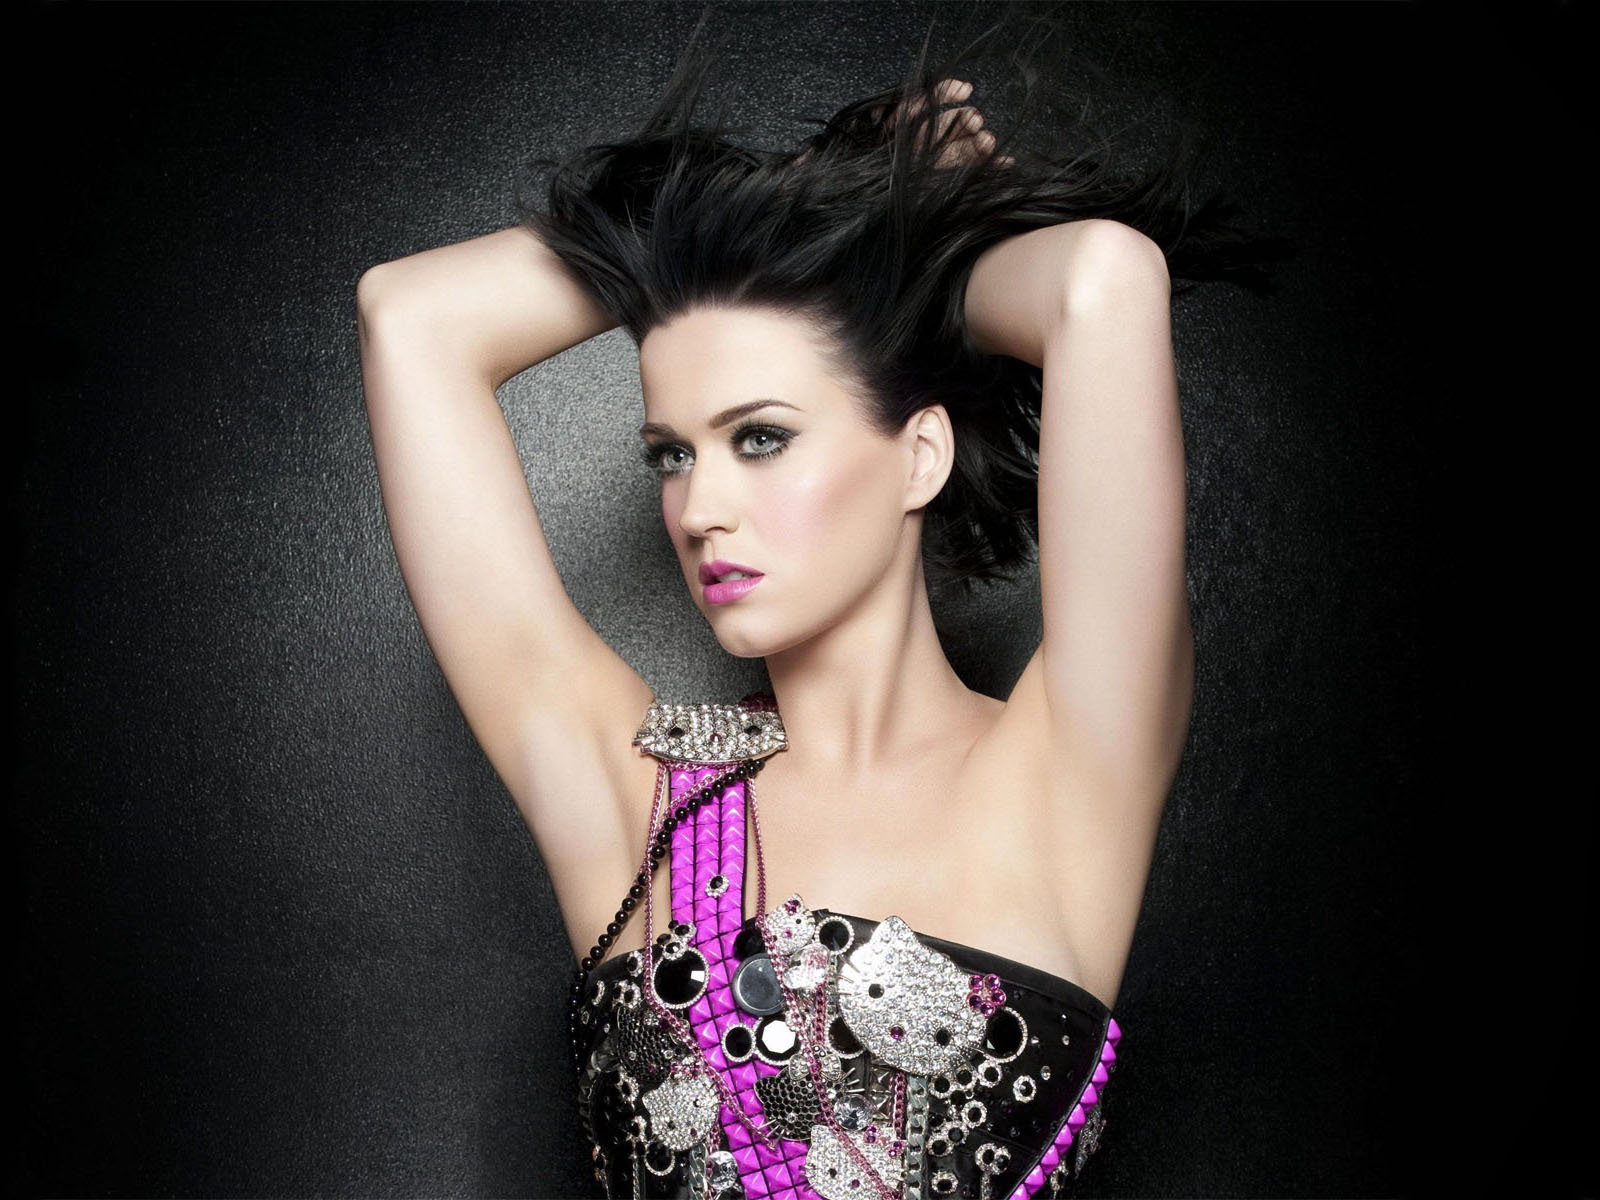 Katy Perry: High Resolution Wallpaper: Katy Perry HD Wallpapers